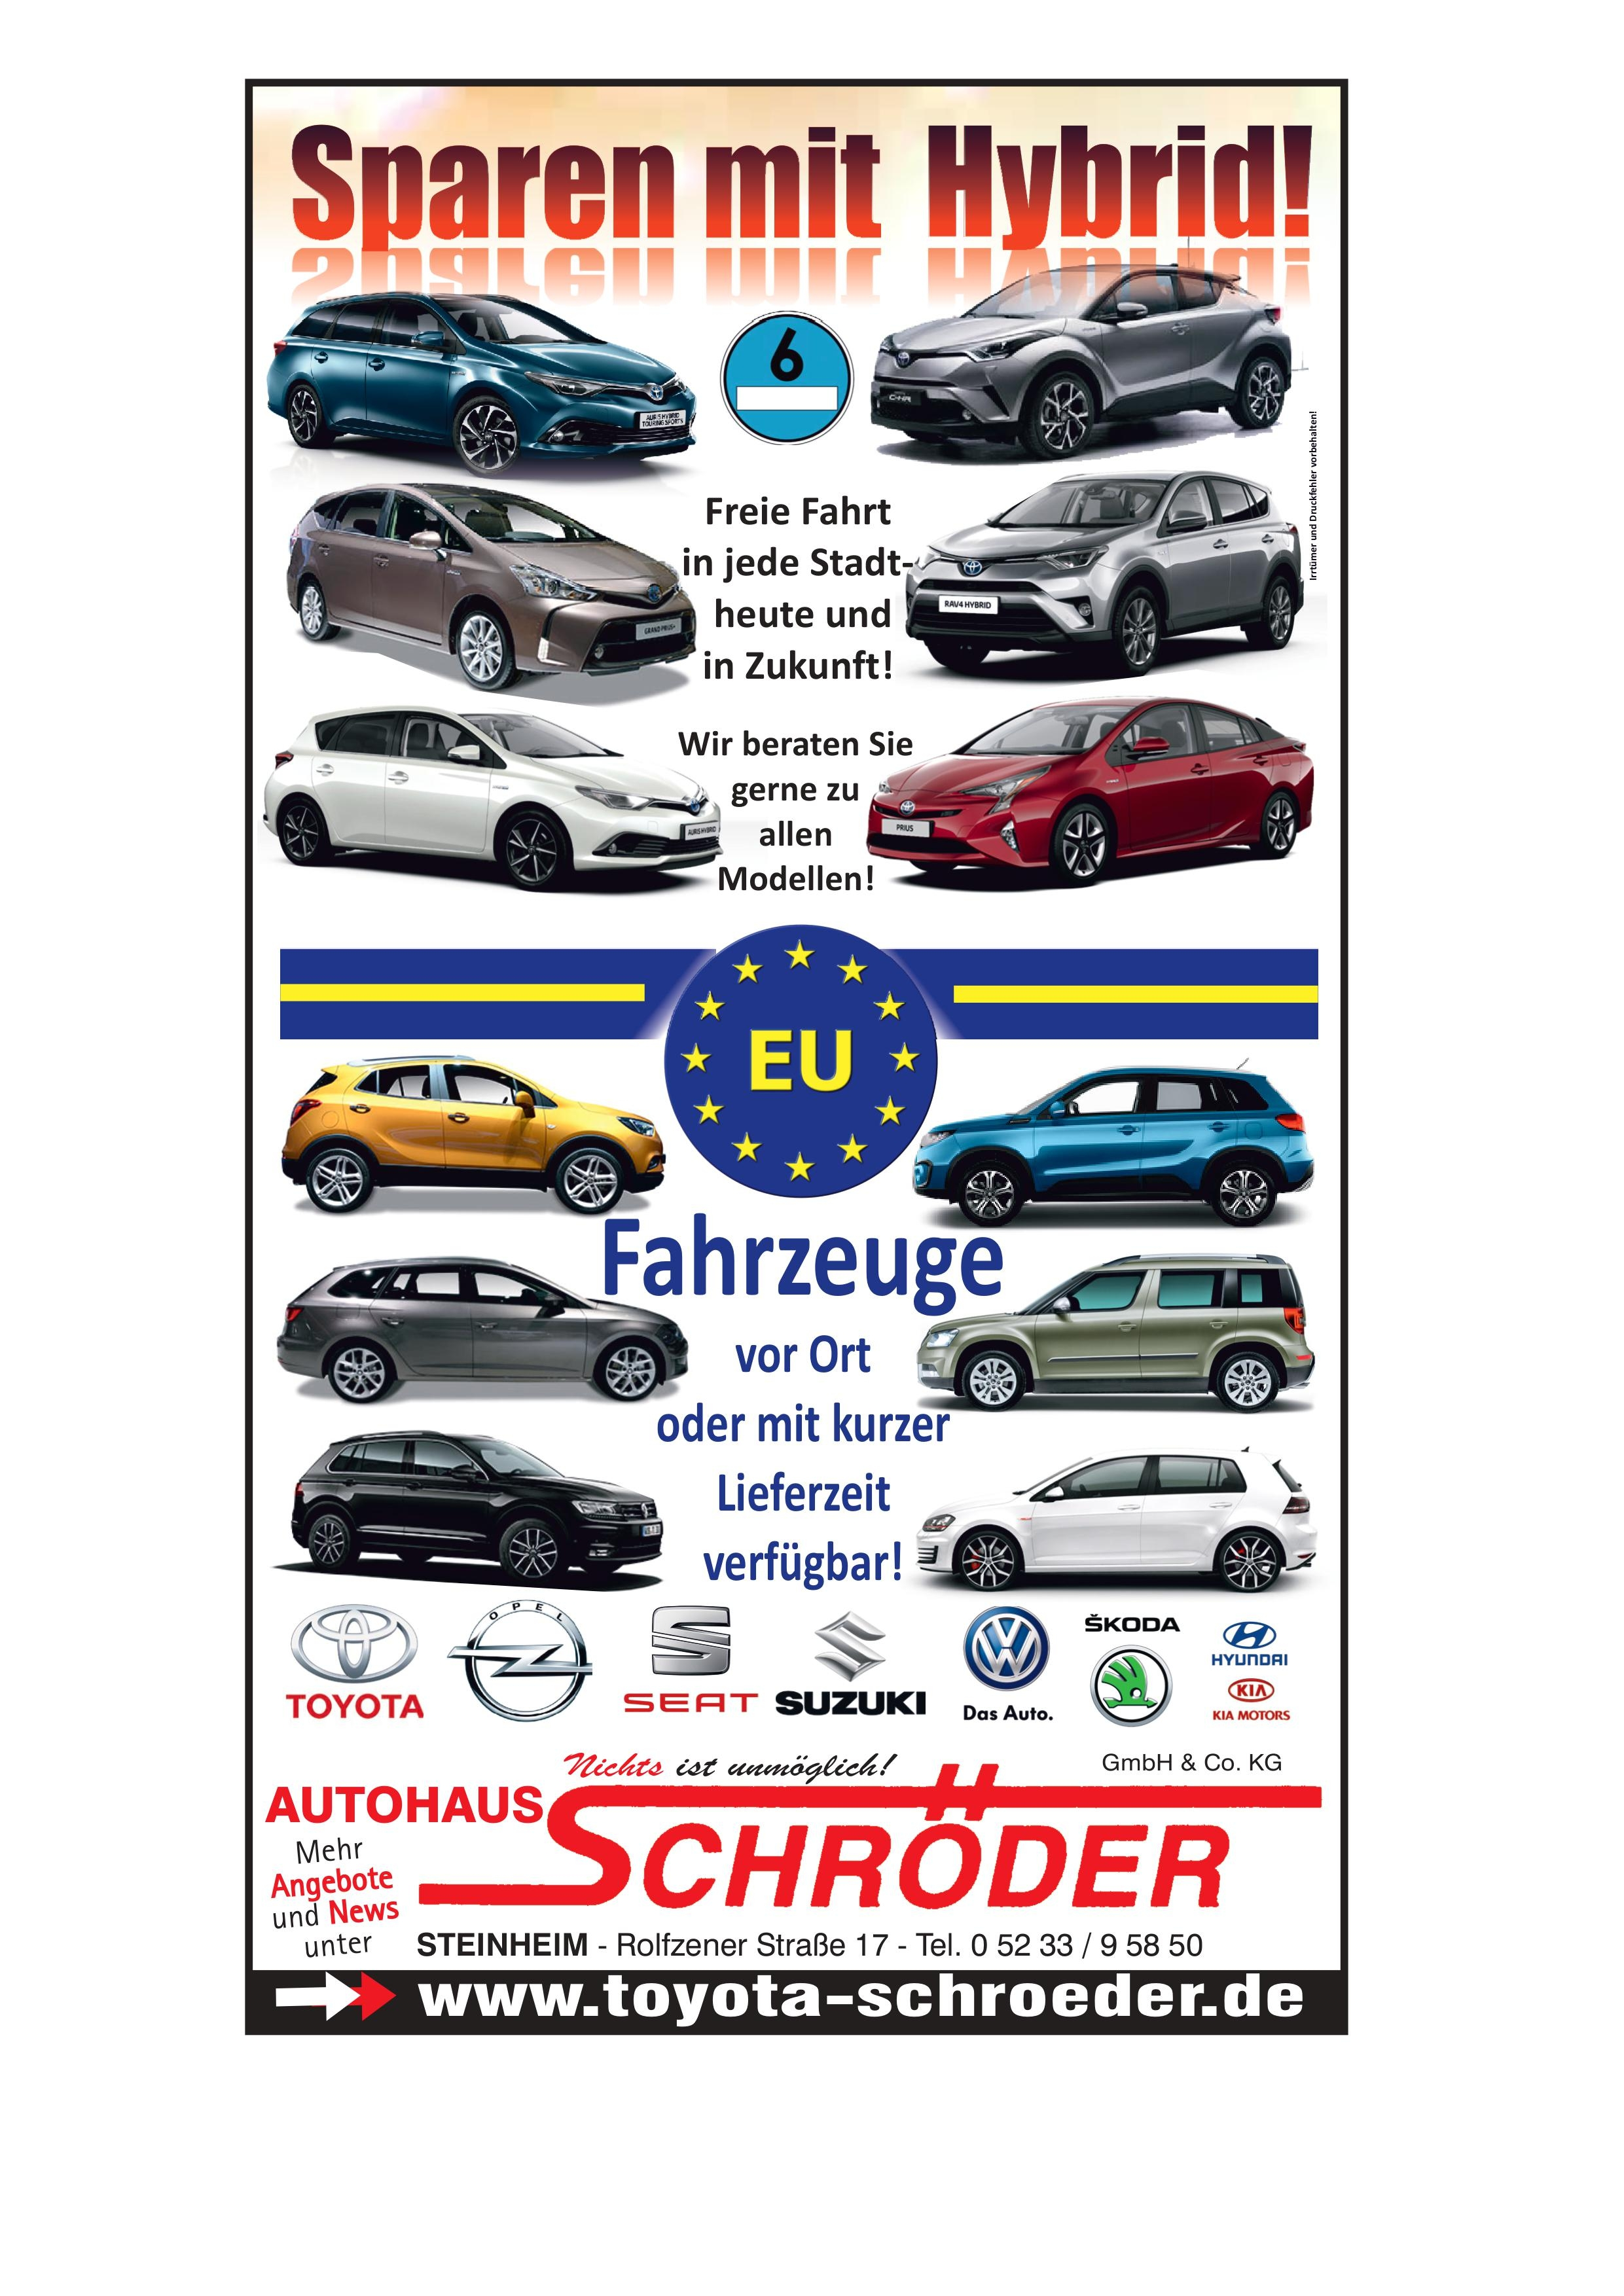 tl_files/toyota/img/autos/Anzeige September 2017.JPG